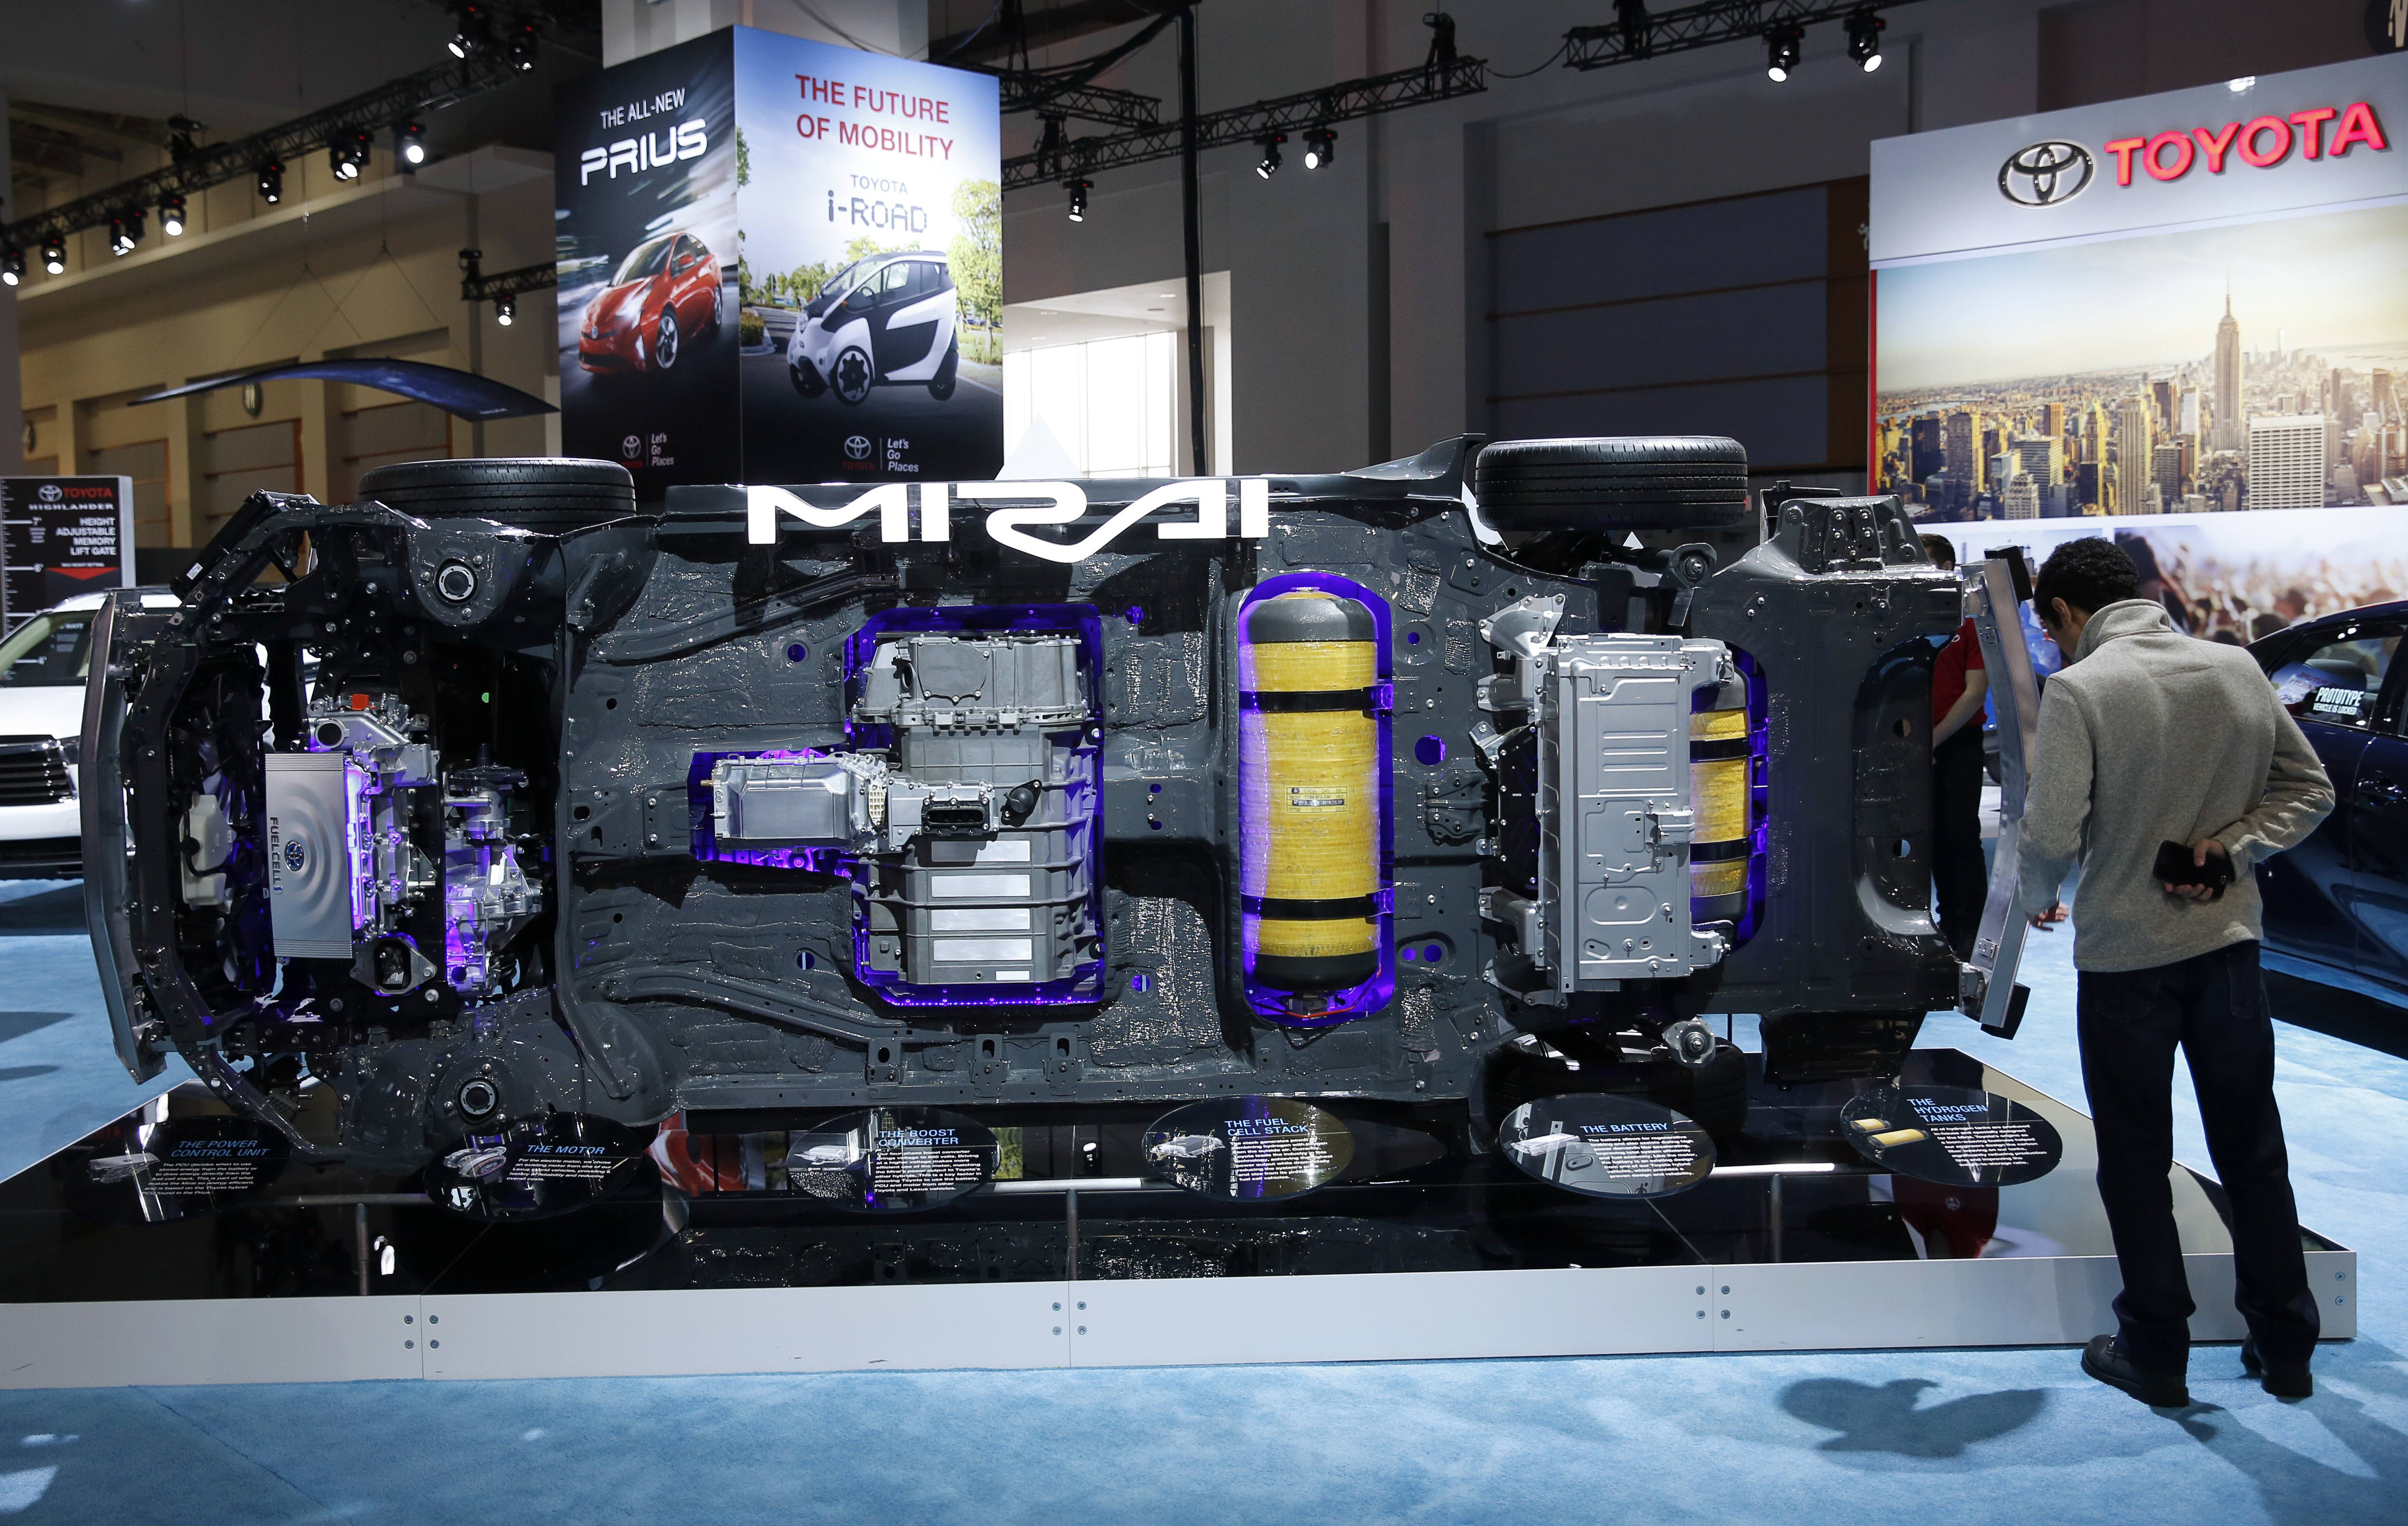 A visitor looks at the underside components of a Toyota Mirai hydrogen fuel cell vehicle at the Washington Auto Show in Washington January 29, 2016.